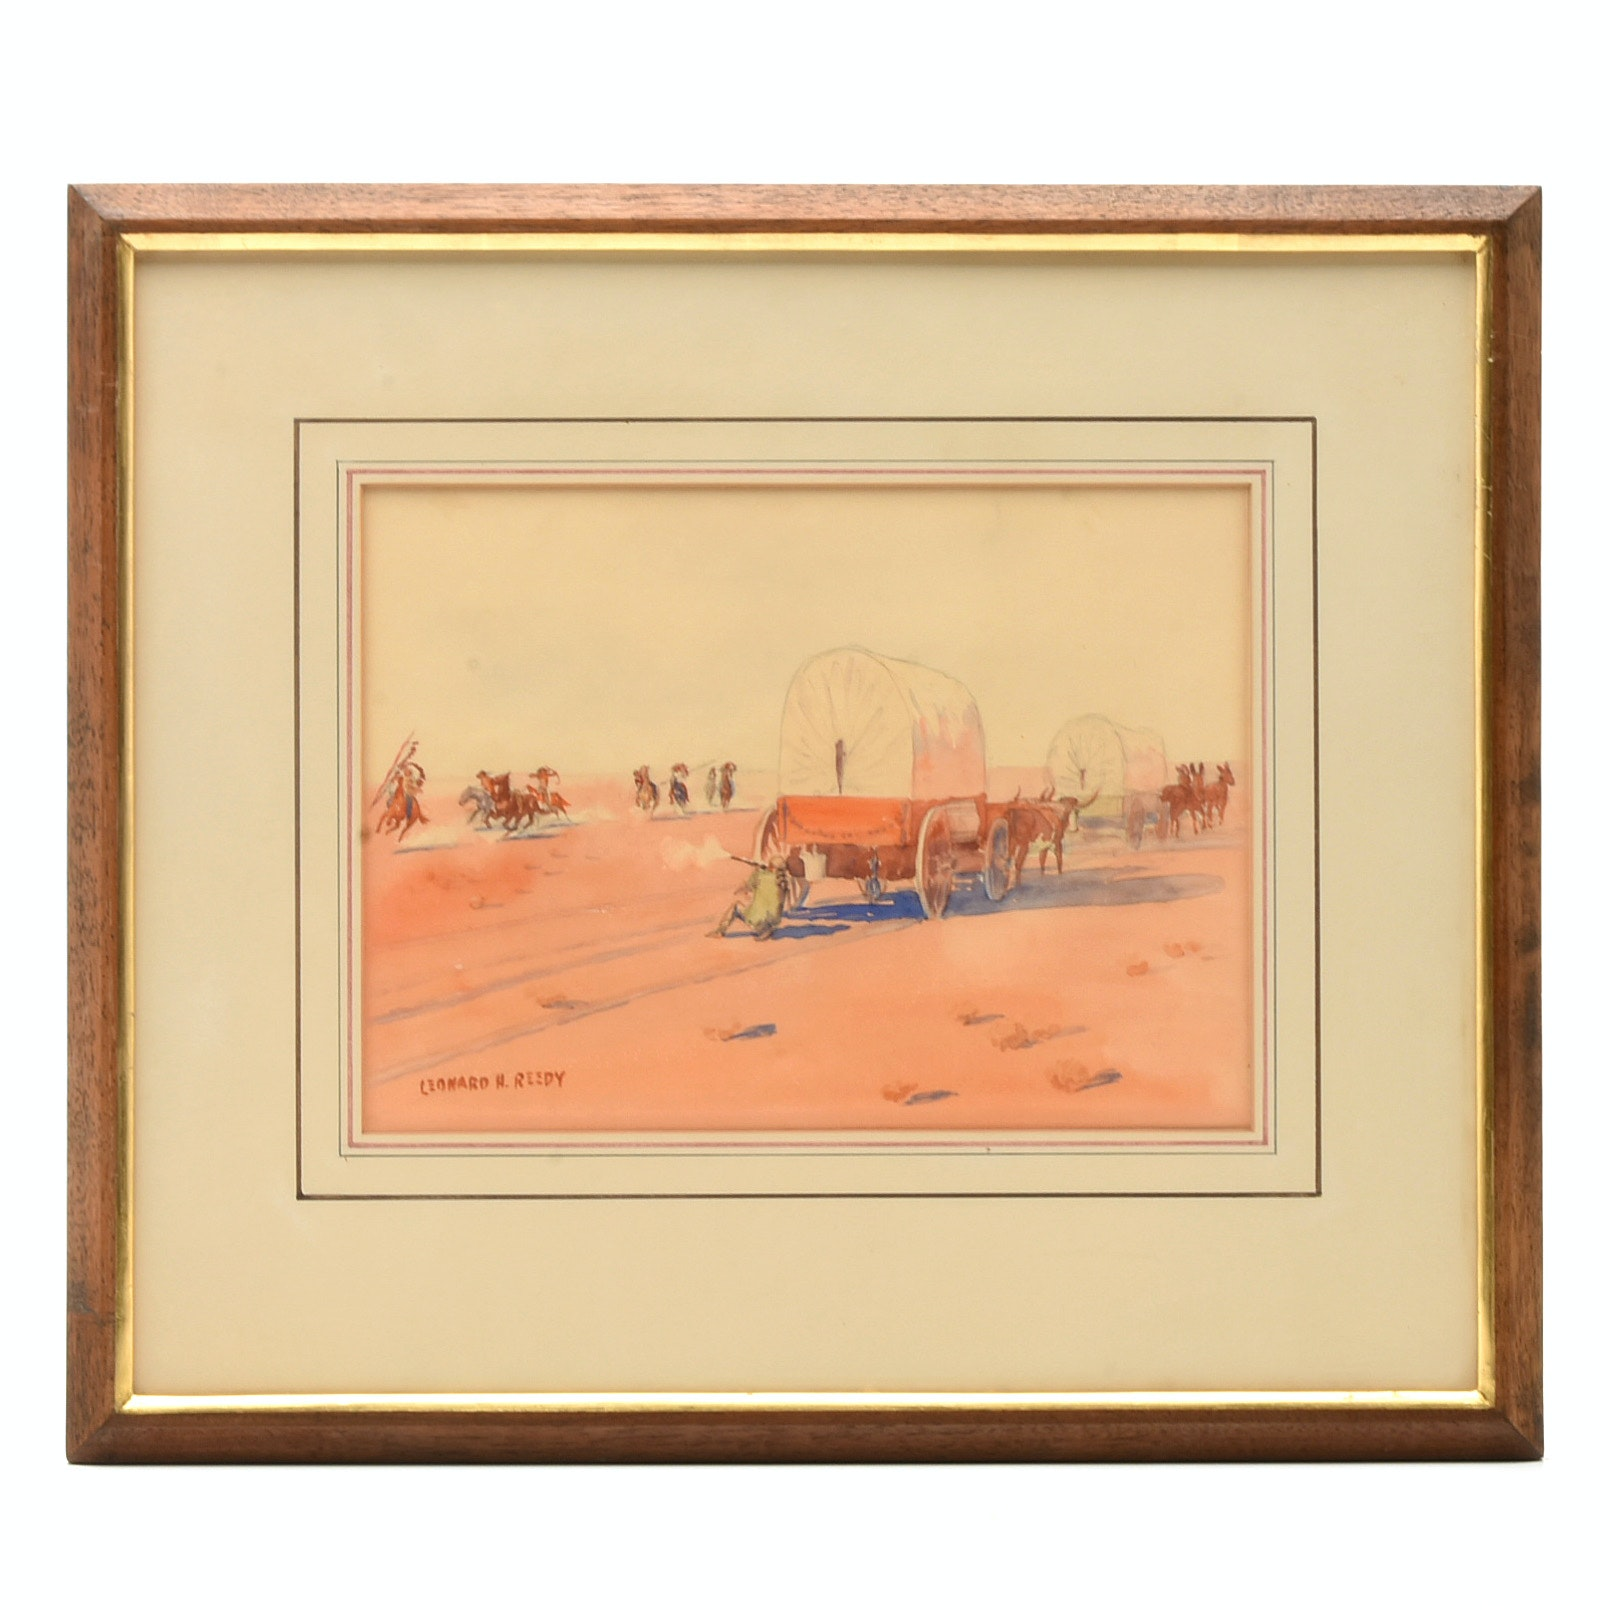 Leonard H. Reedy Watercolor on Paper of Western Attack Scene